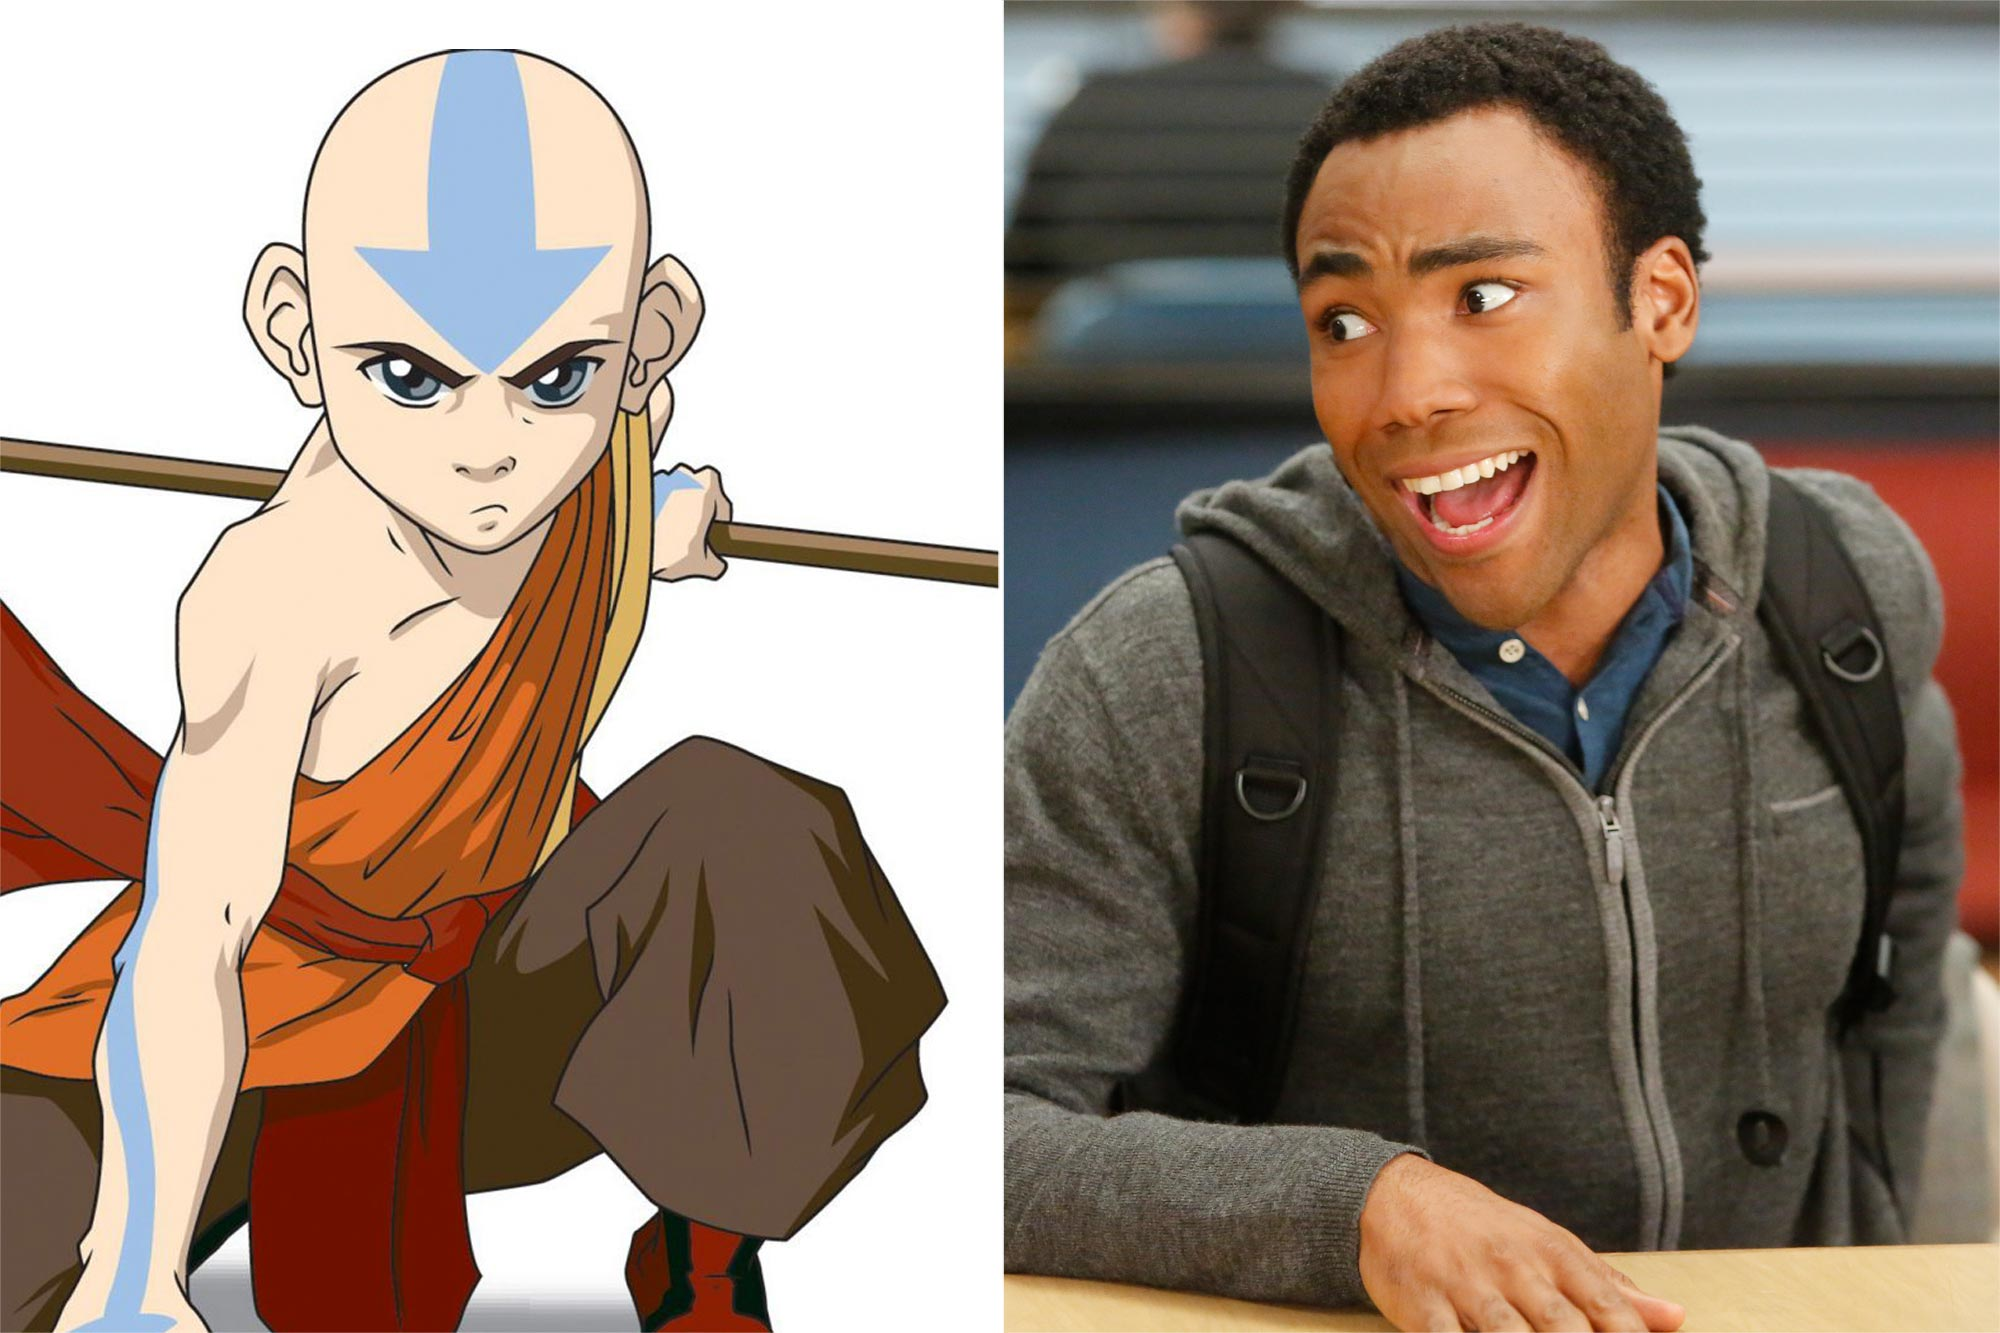 Avatar: The Last Airbender and Donald Glover on Community